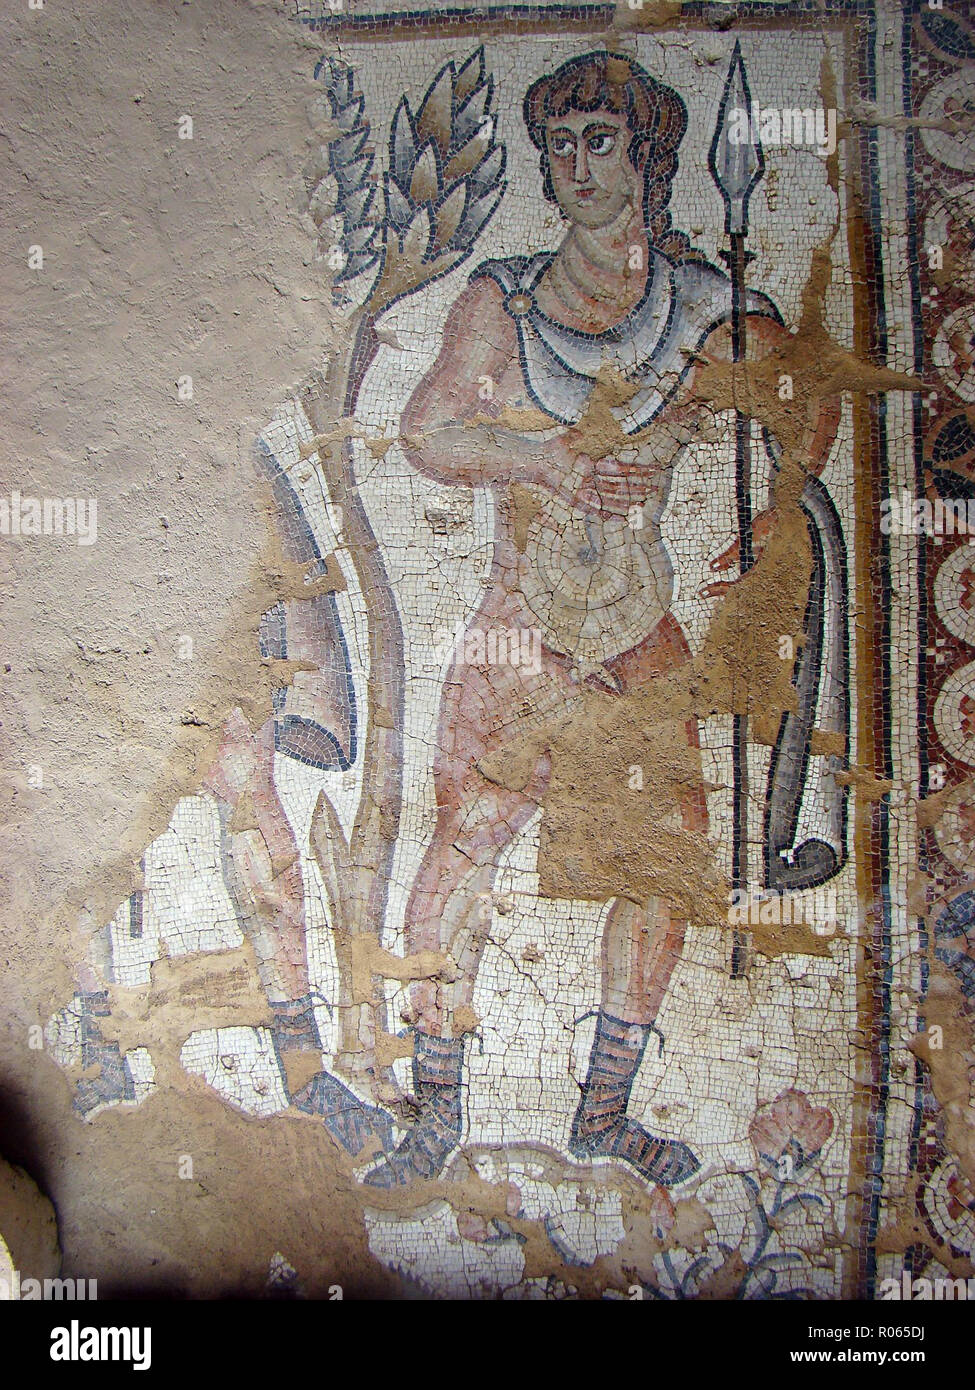 6362. Sepphoris mosaic, late Roman depicting a hunter. Stock Photo